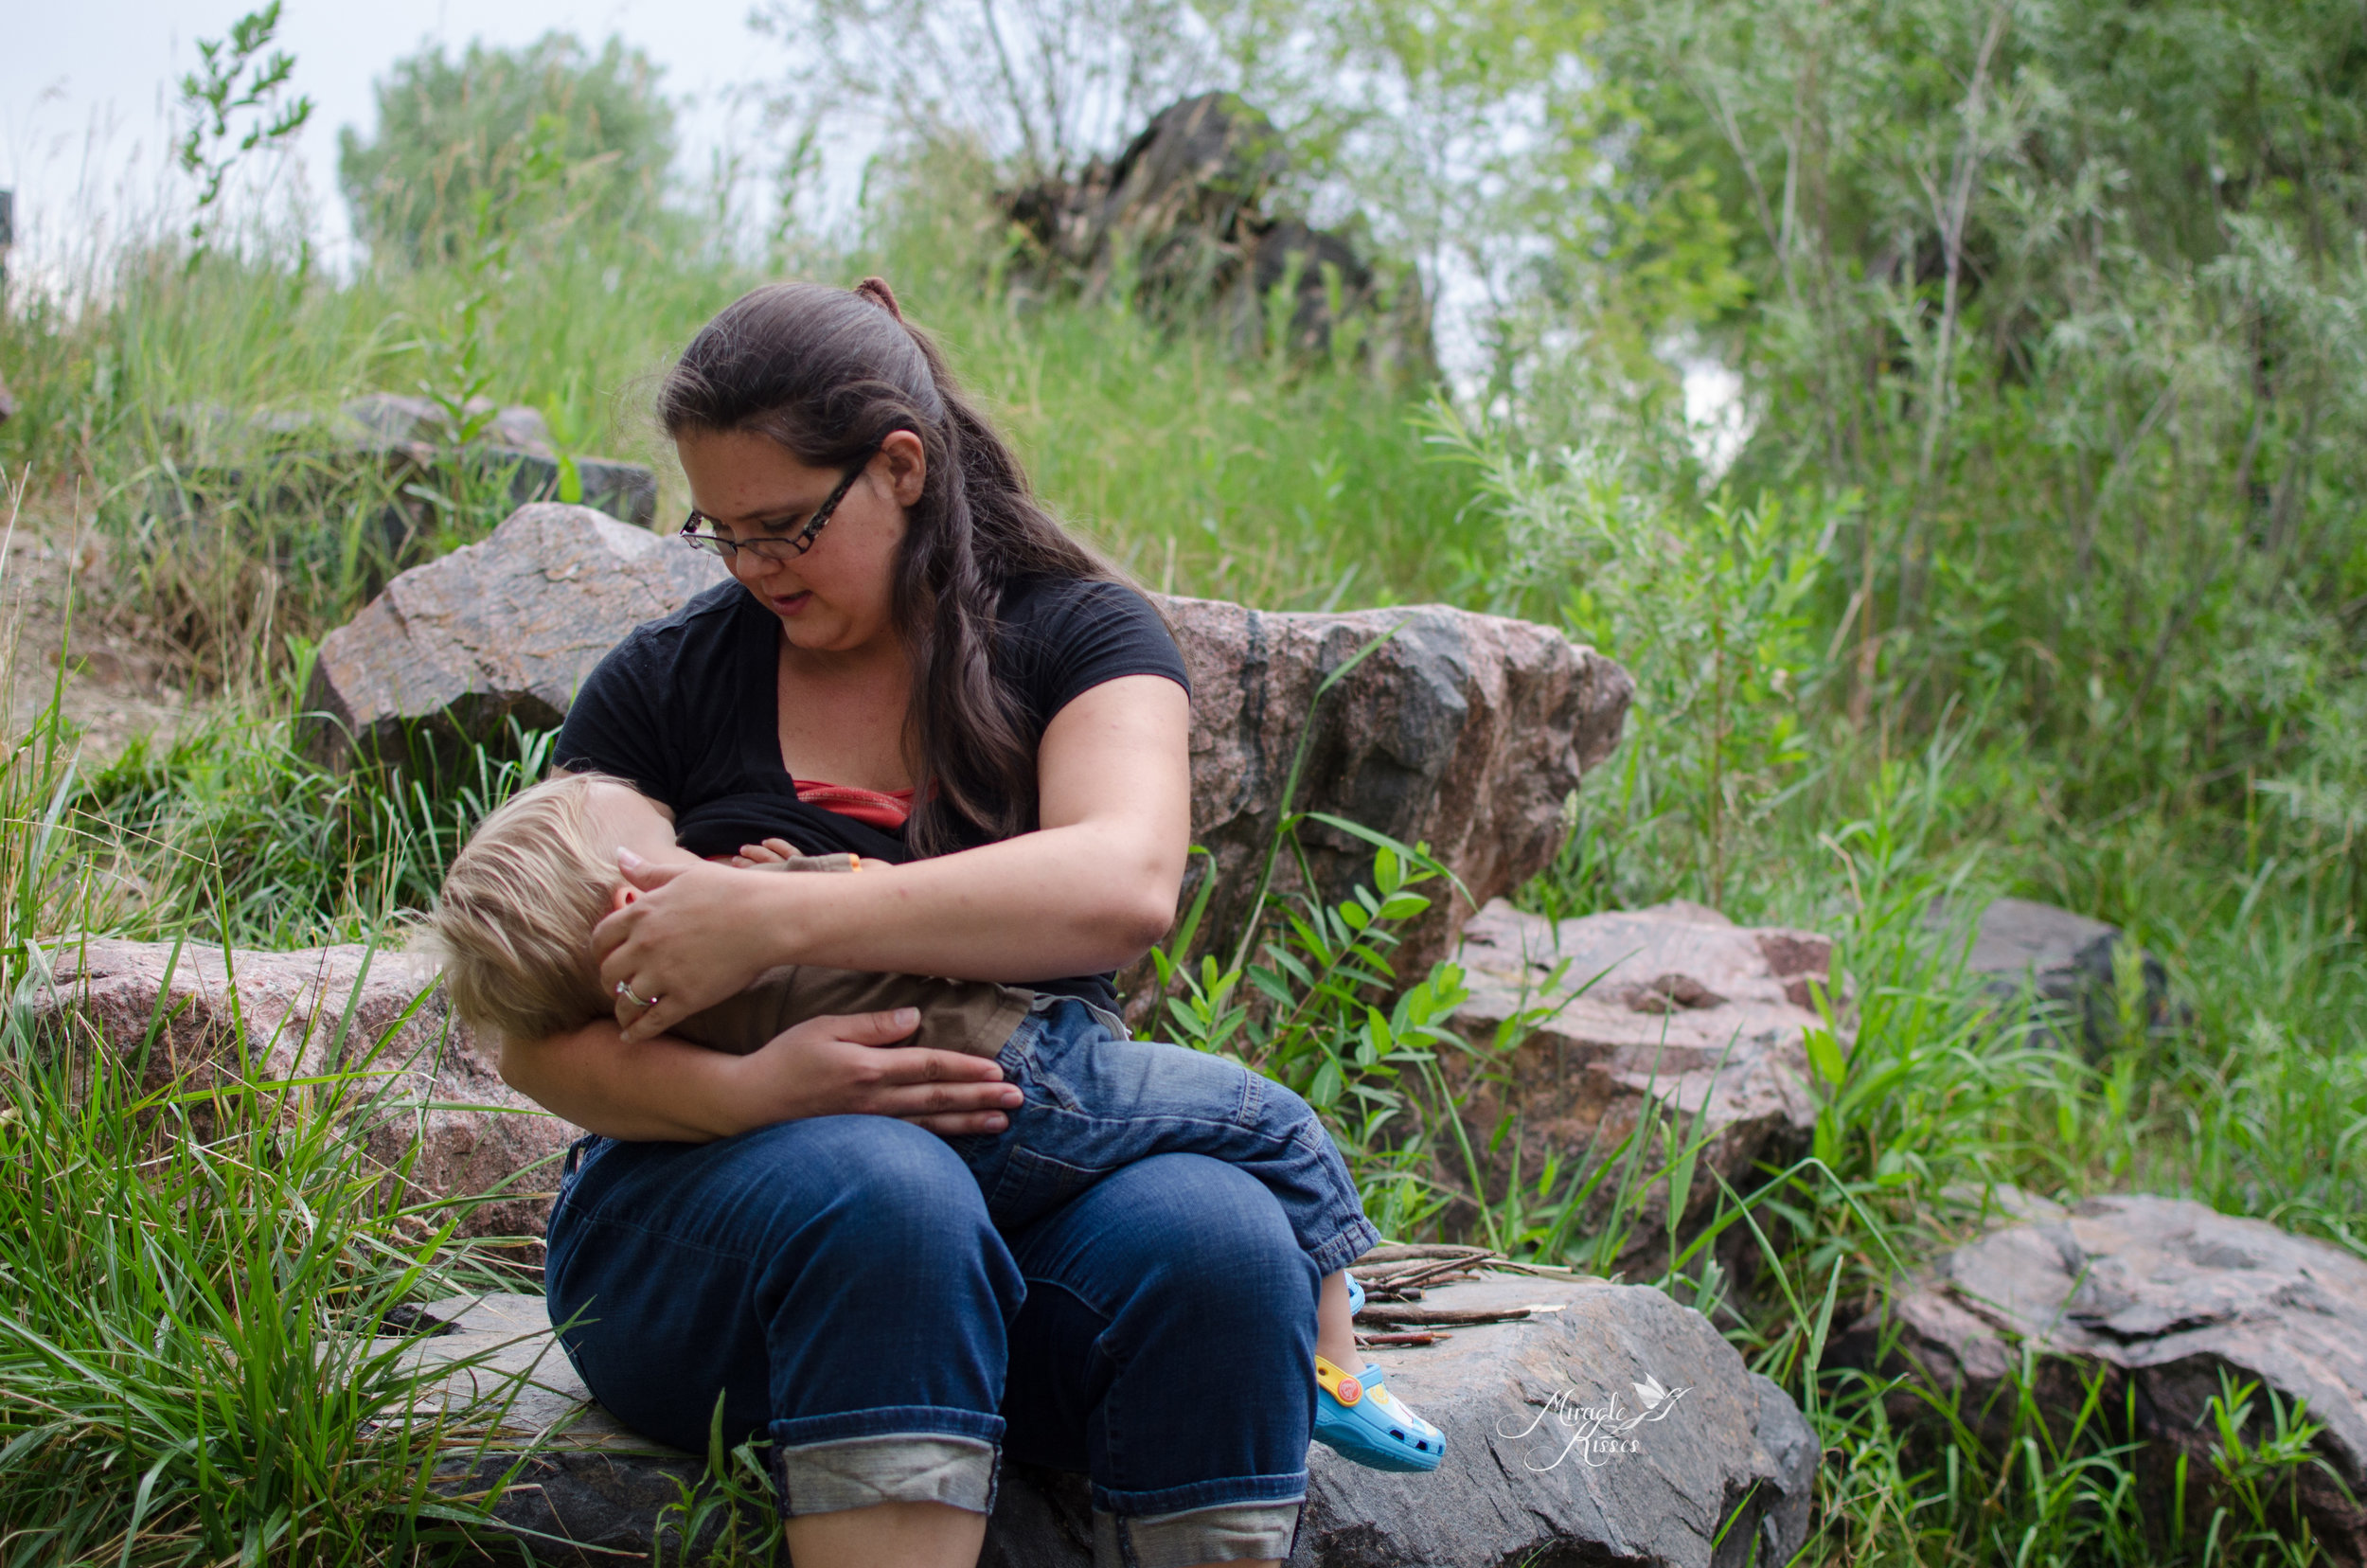 extended breastfeeding in public, outdoor photography, 31 days 31 stories